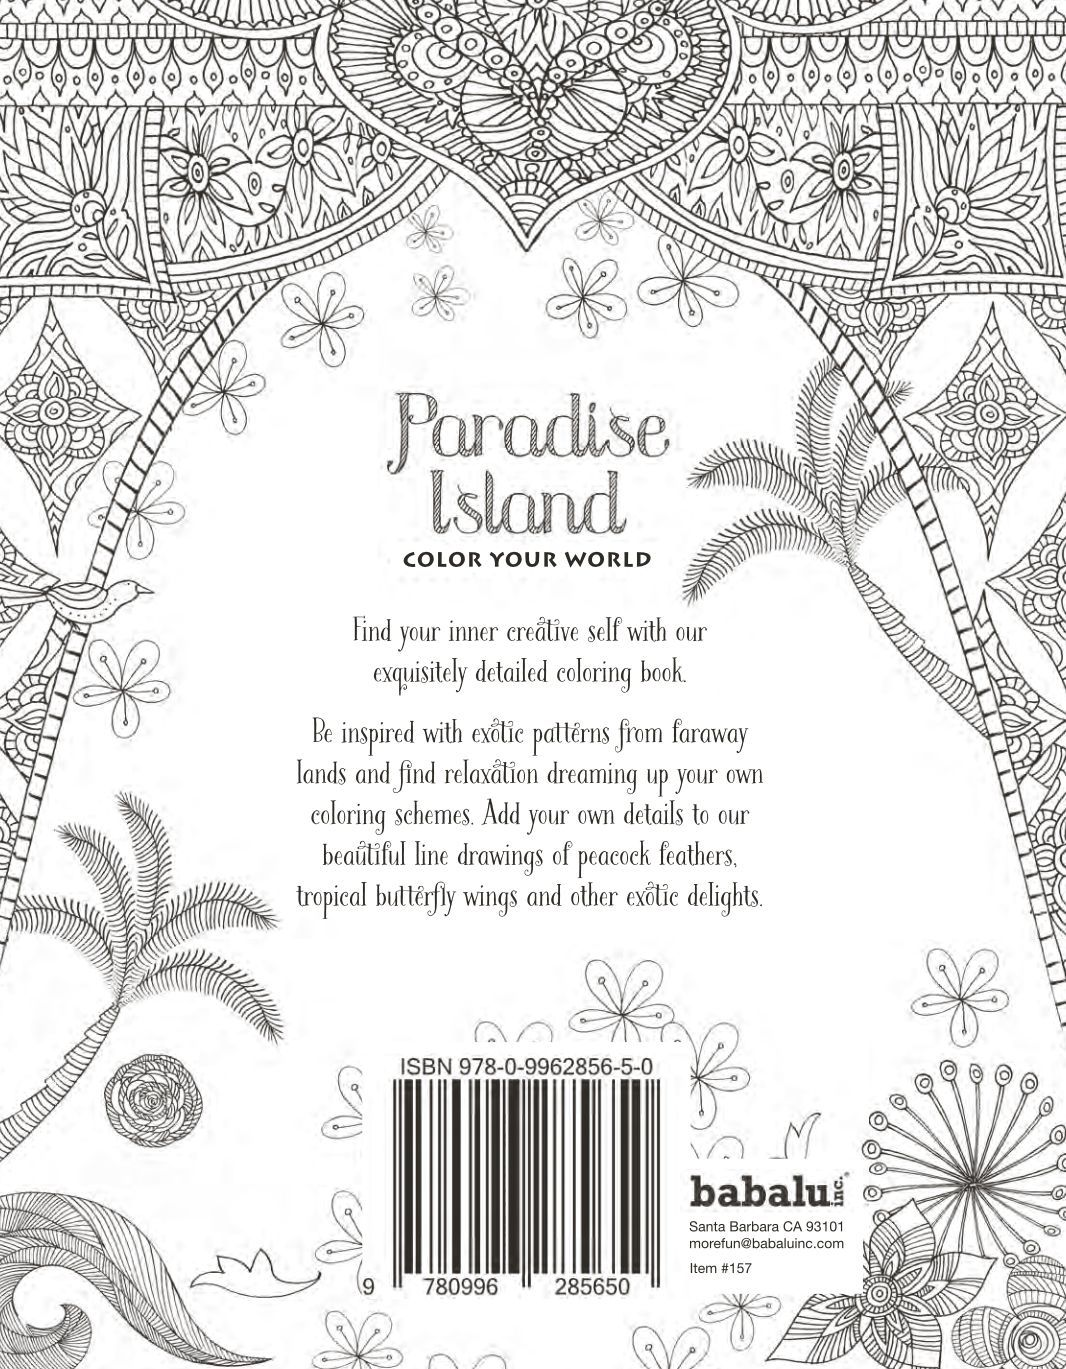 Santa Barbara Coloring Book With Colour Your World Paradise Island Adult EBay